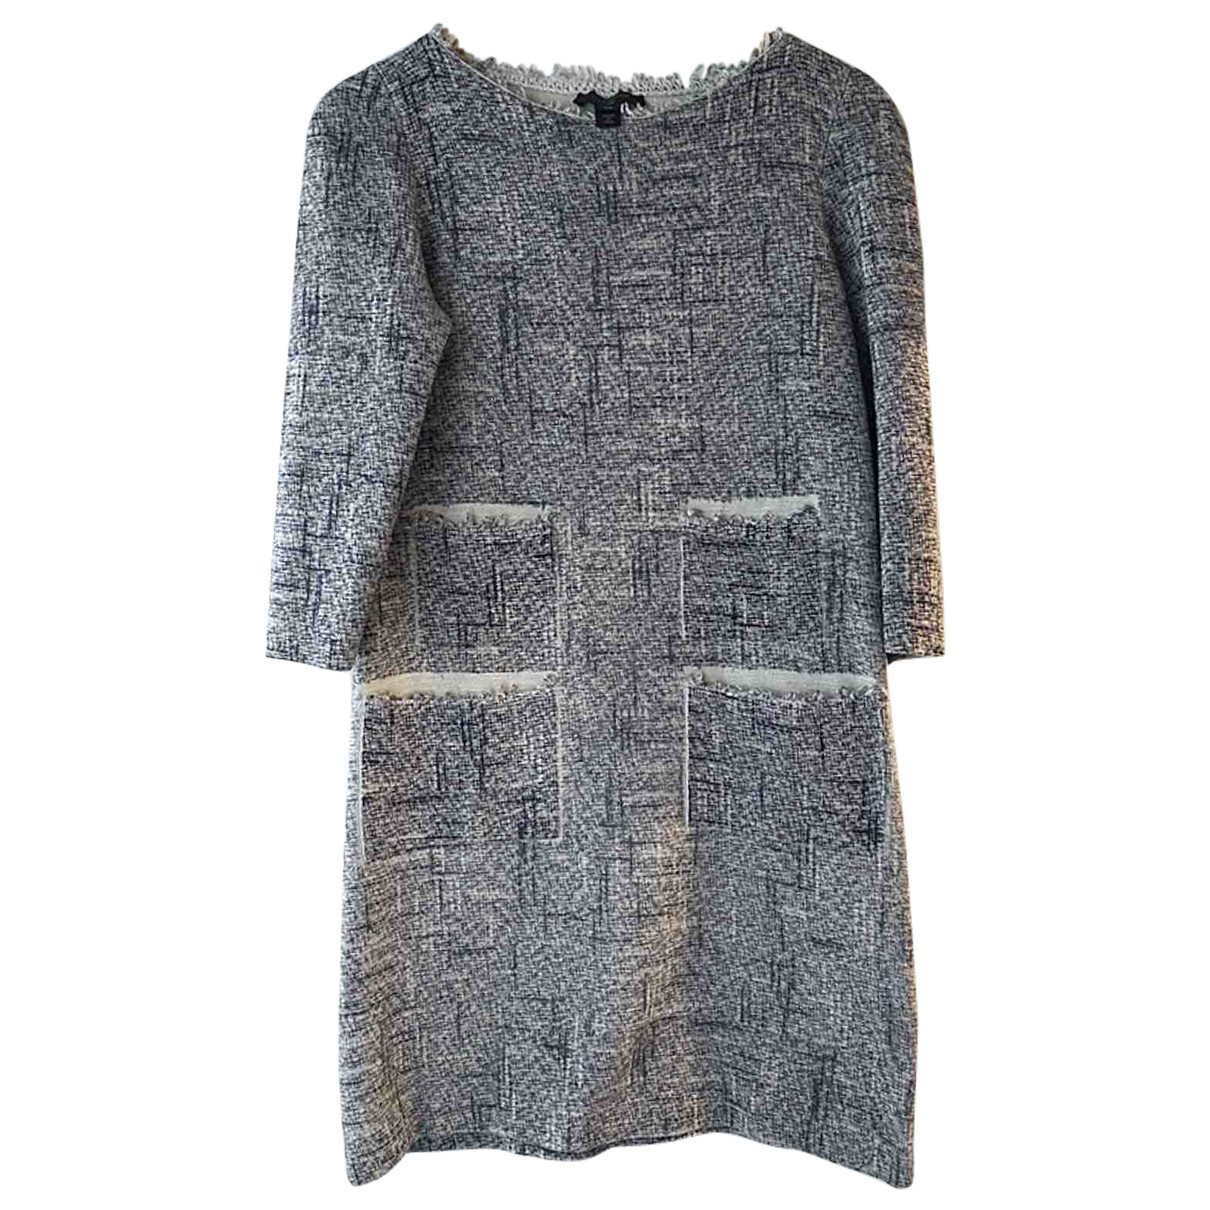 Louis Vuitton \N Grey Cotton dress for Women 34 FR